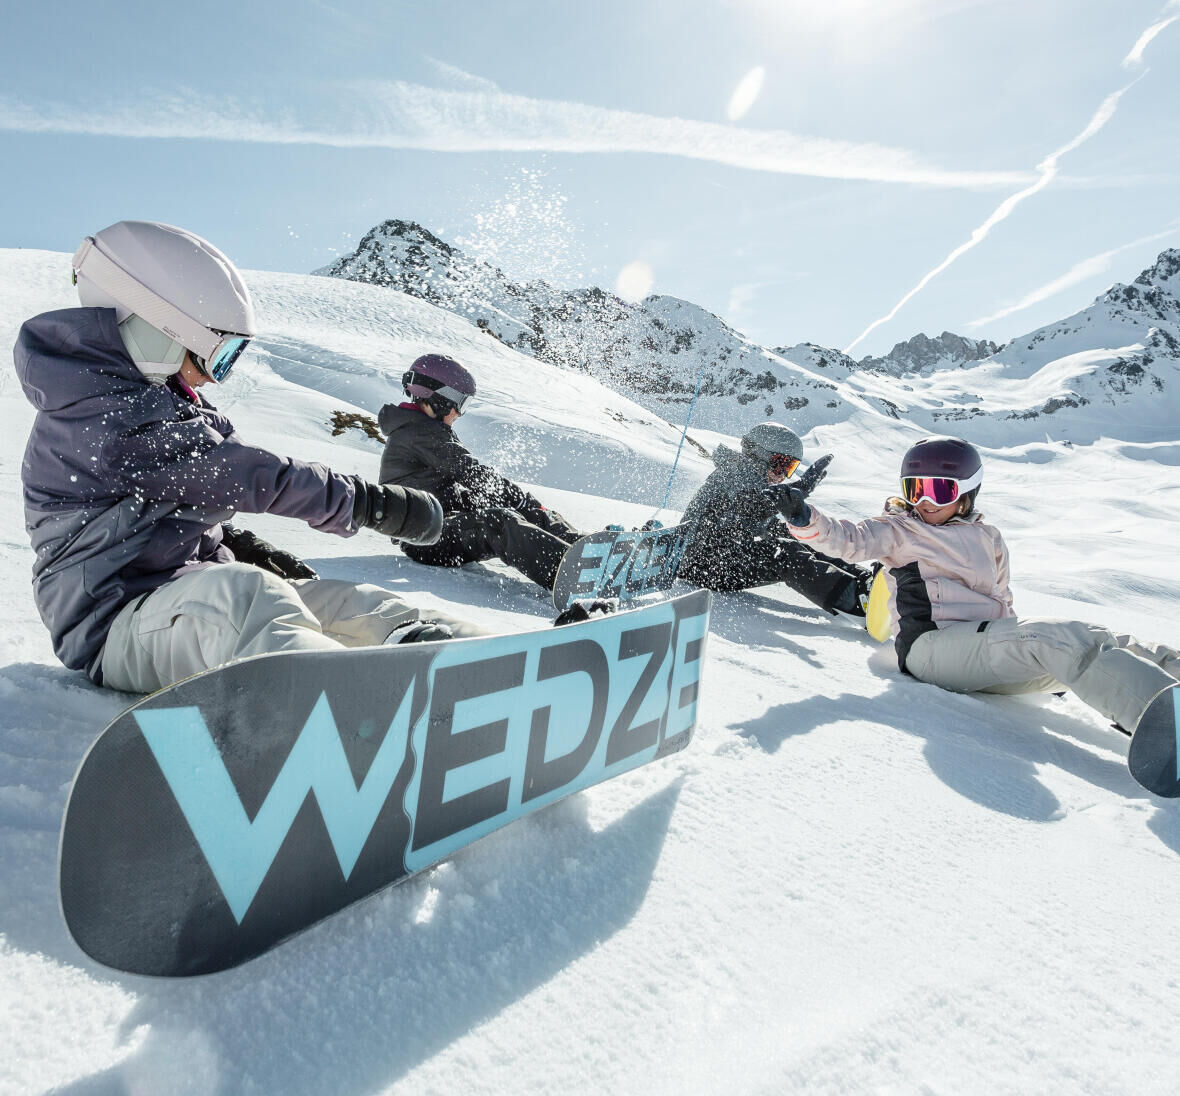 How to choose snowboard boots for your child